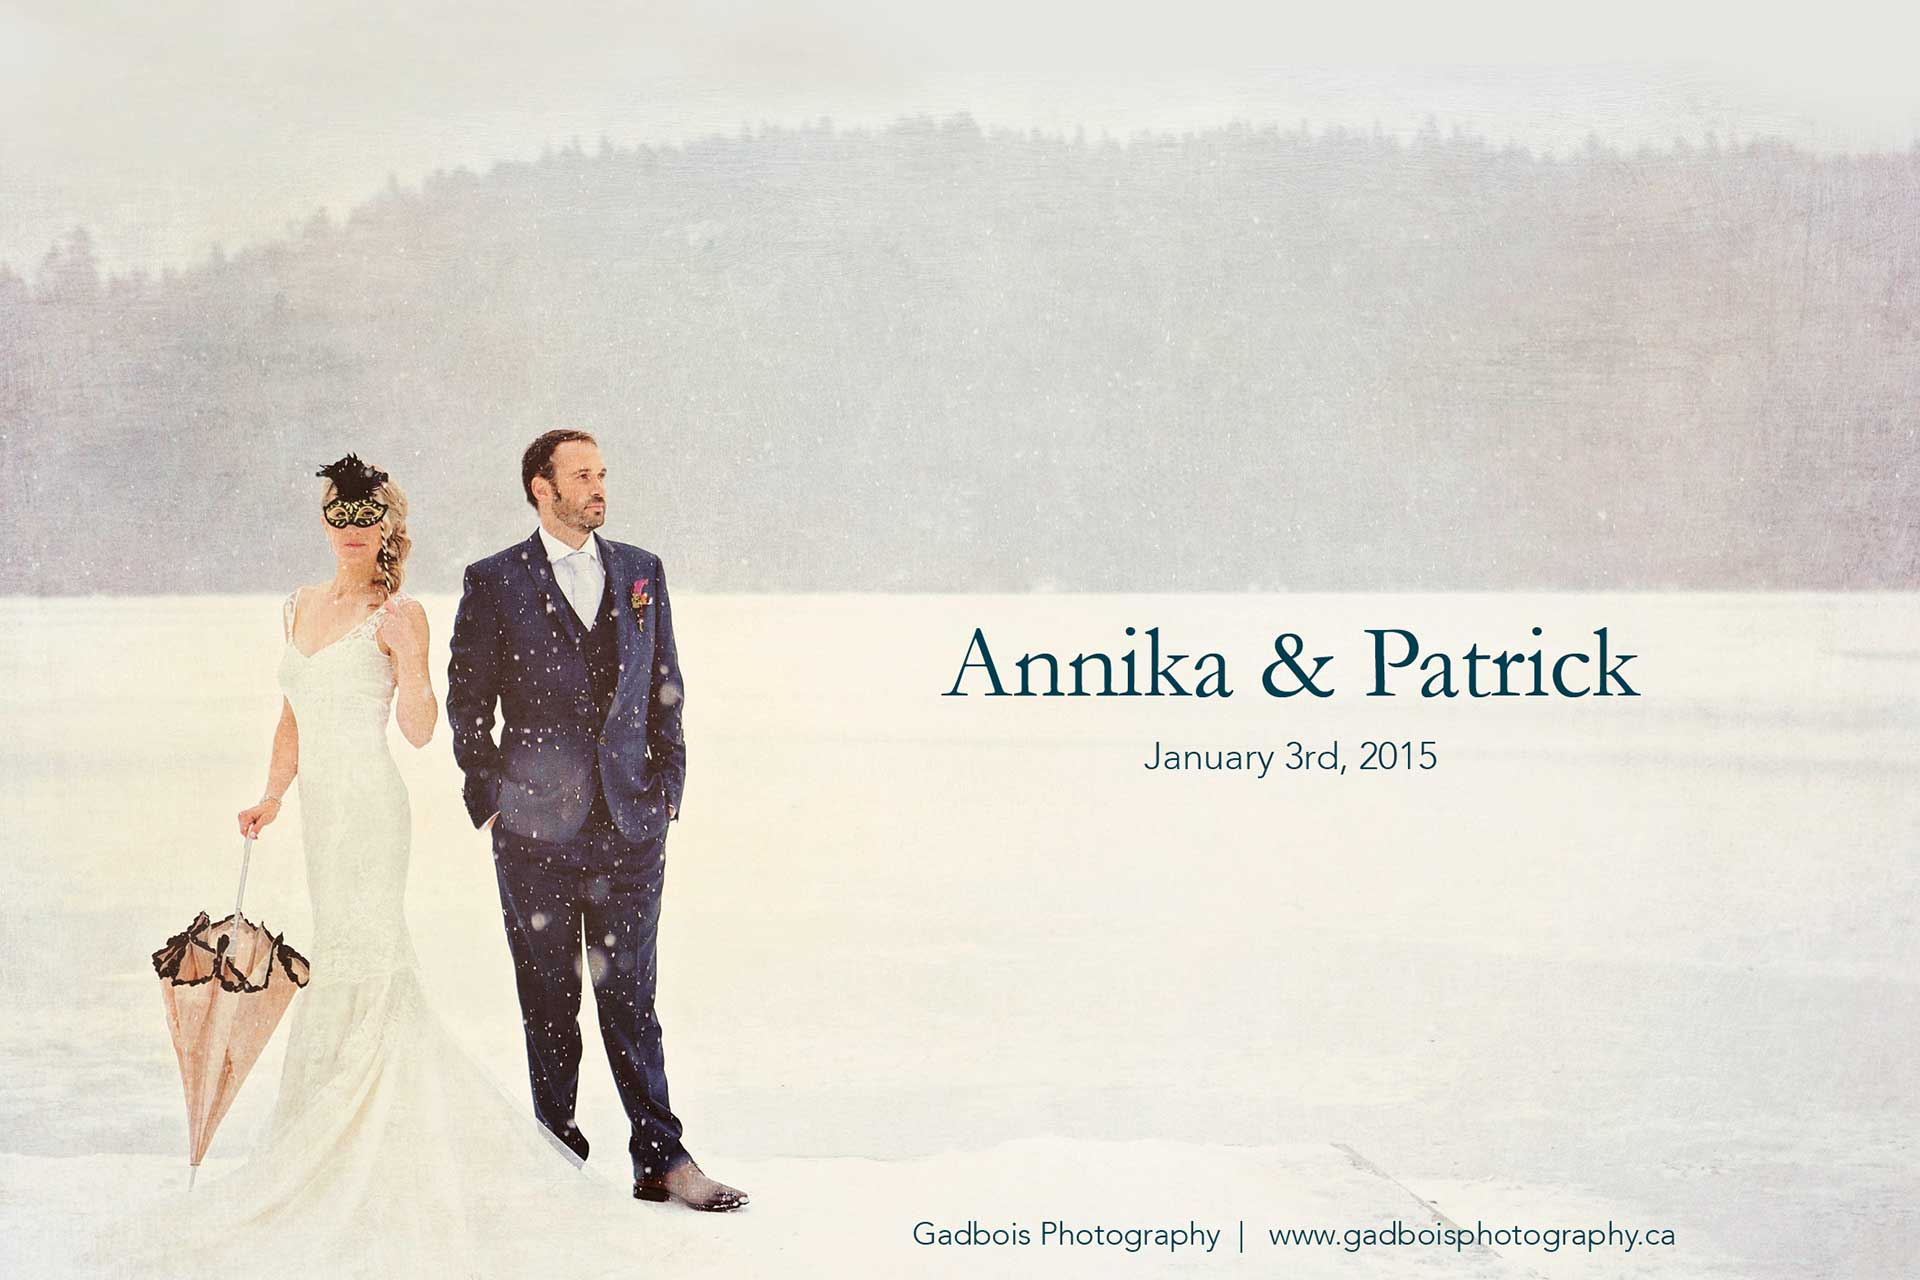 Annika and Patrick's Wedding